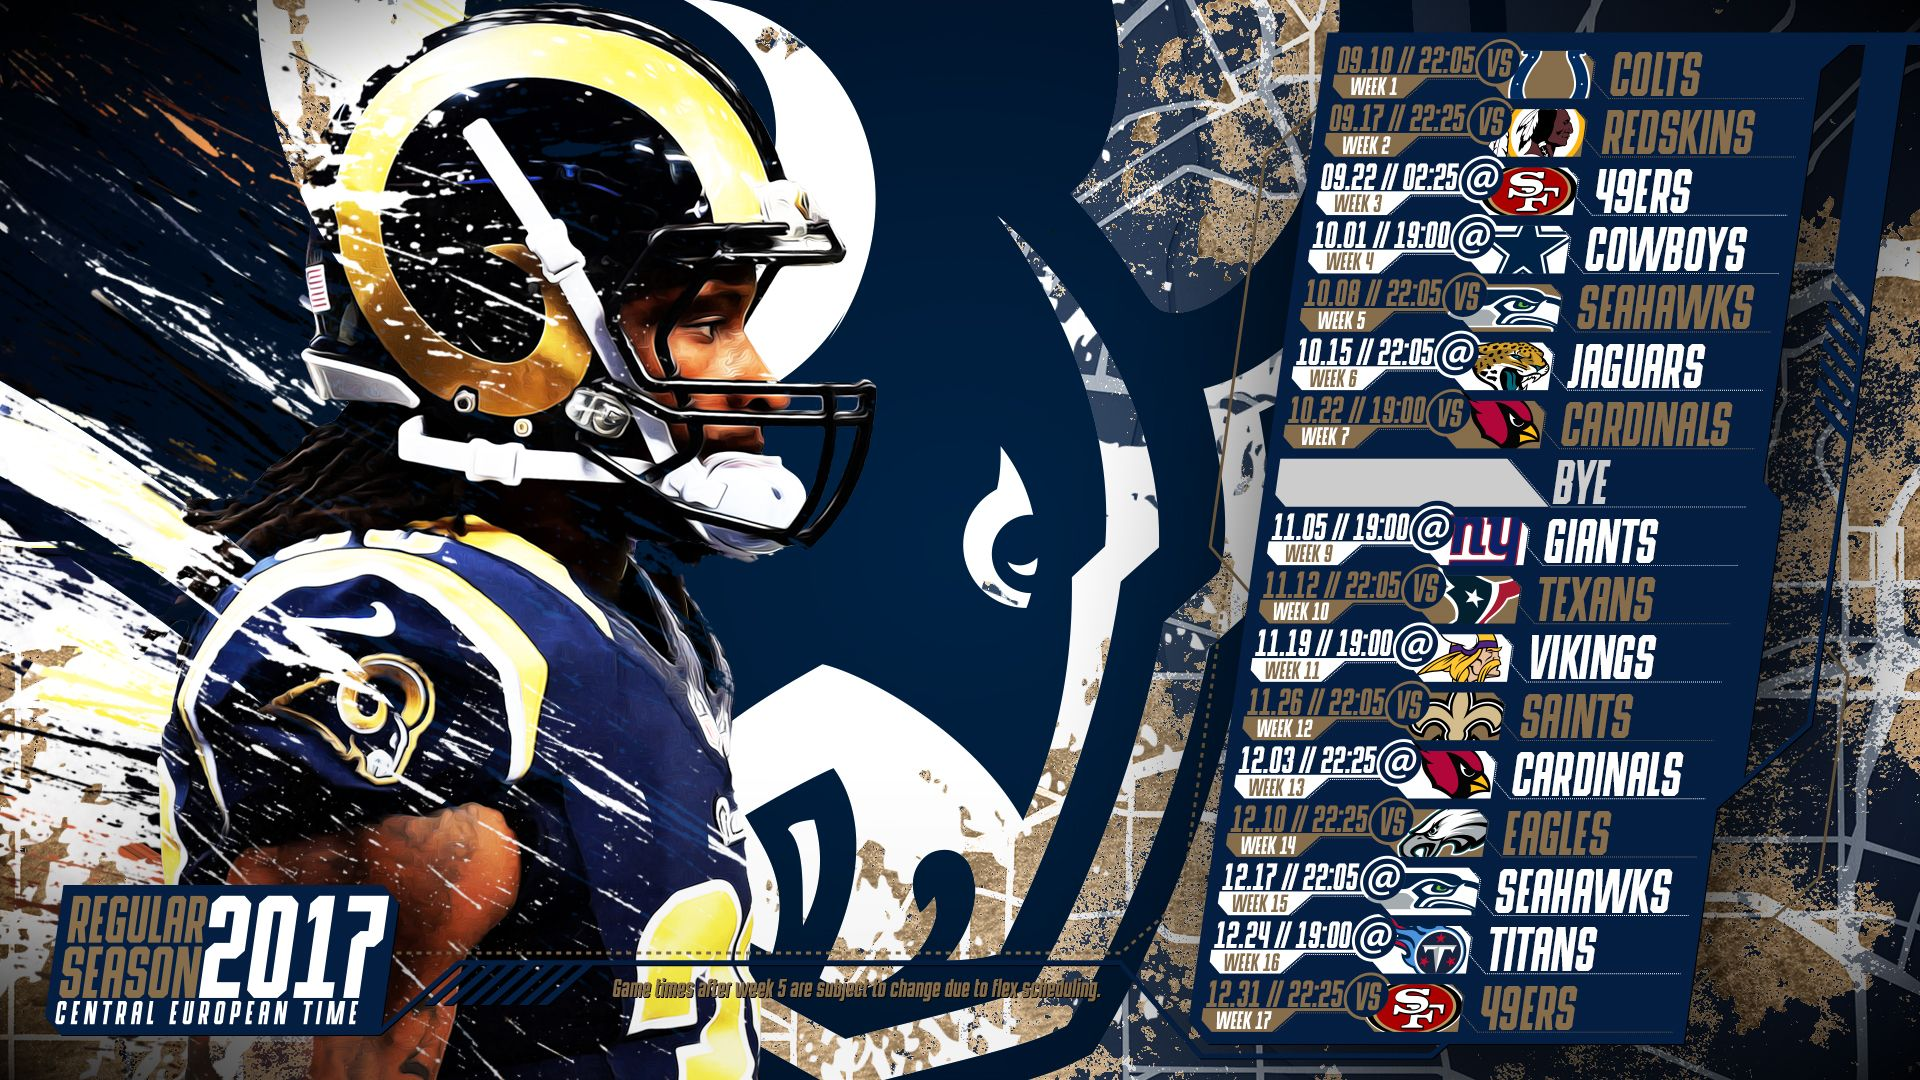 Pin On Nfl Schedule Wallpapers Central European Time